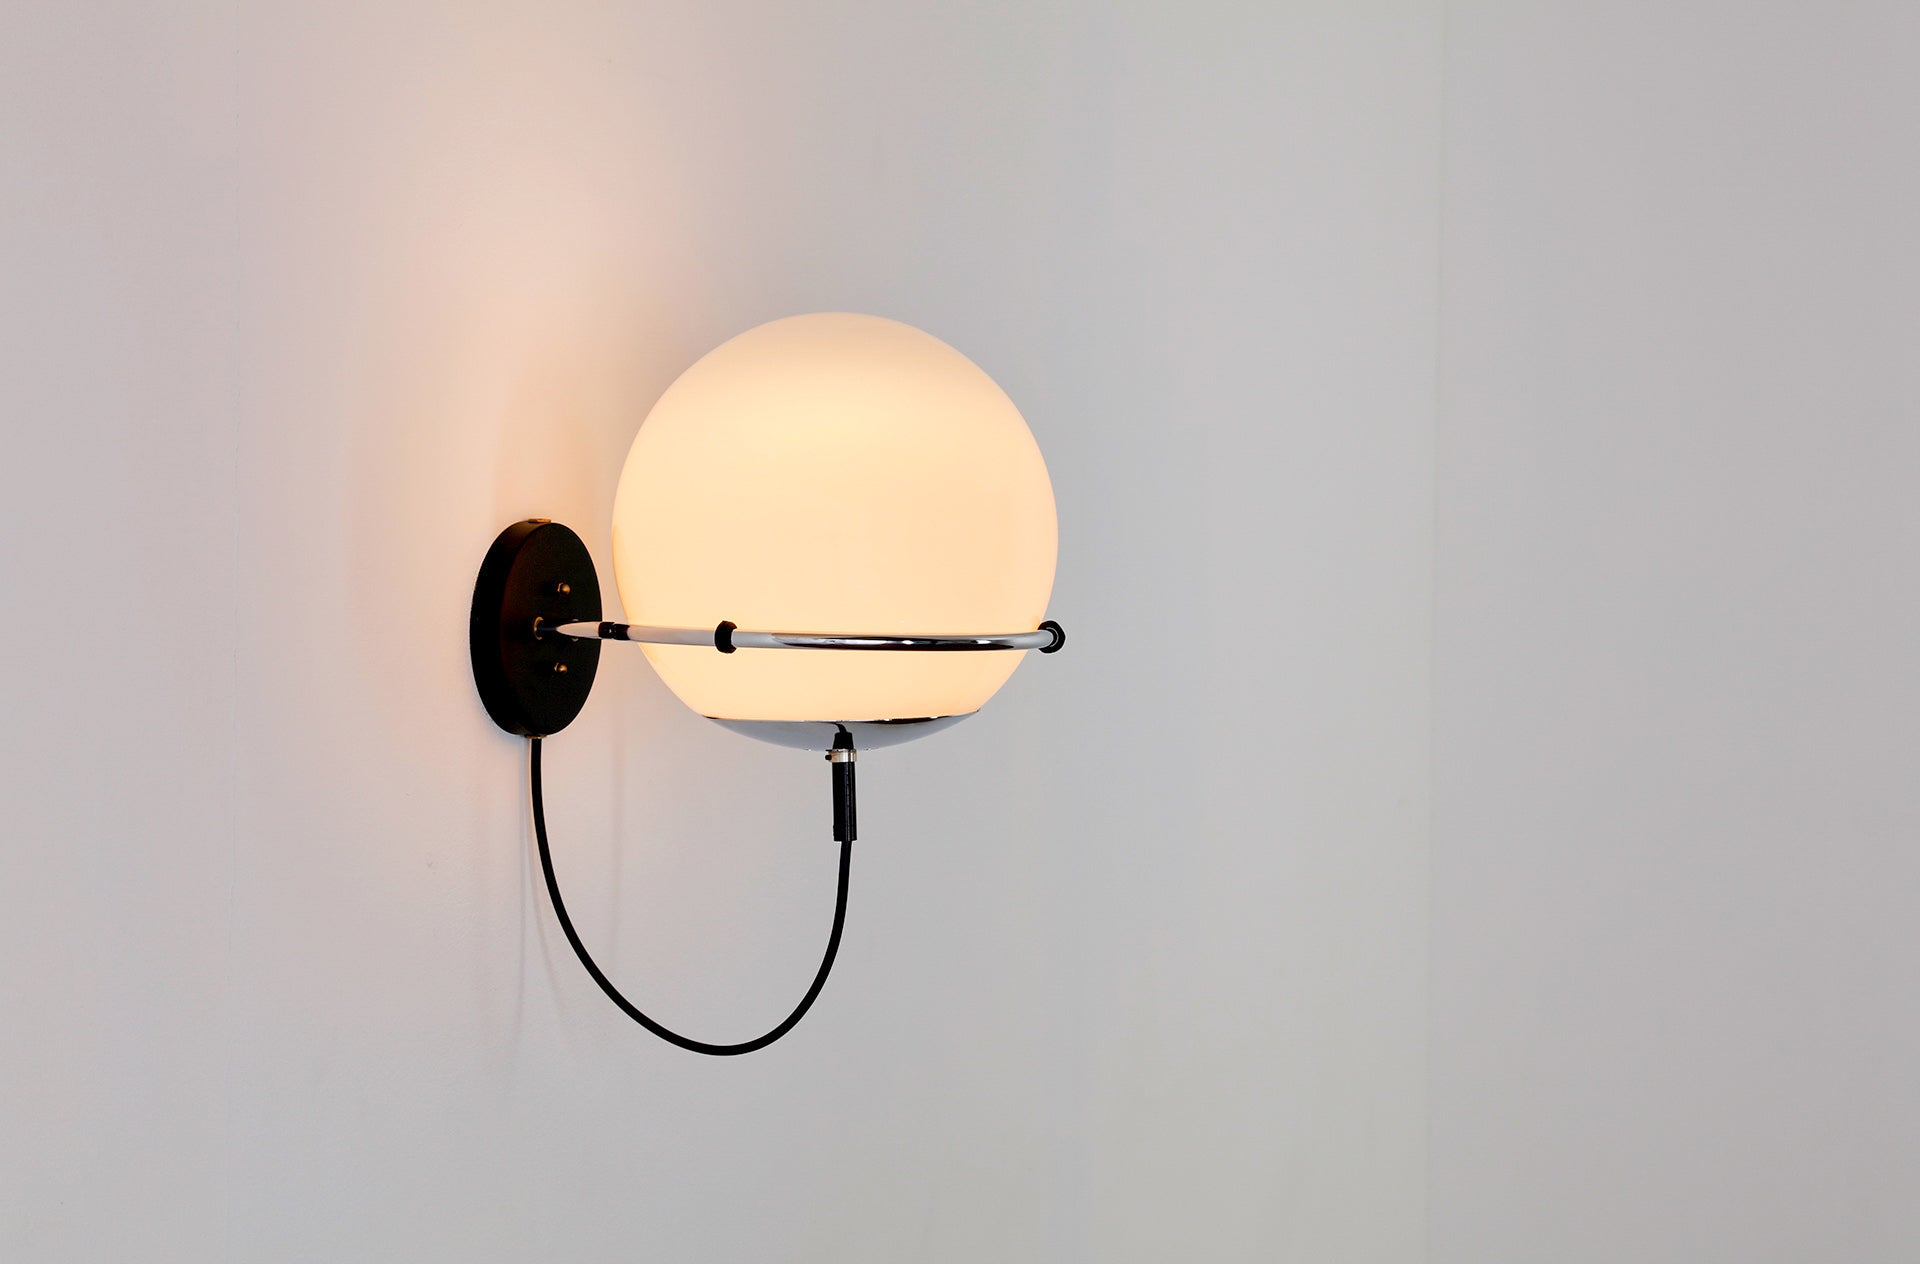 Pair of OCHTENDNEVEL /MORNING HAZE wall lights by Frank Ligtelijn